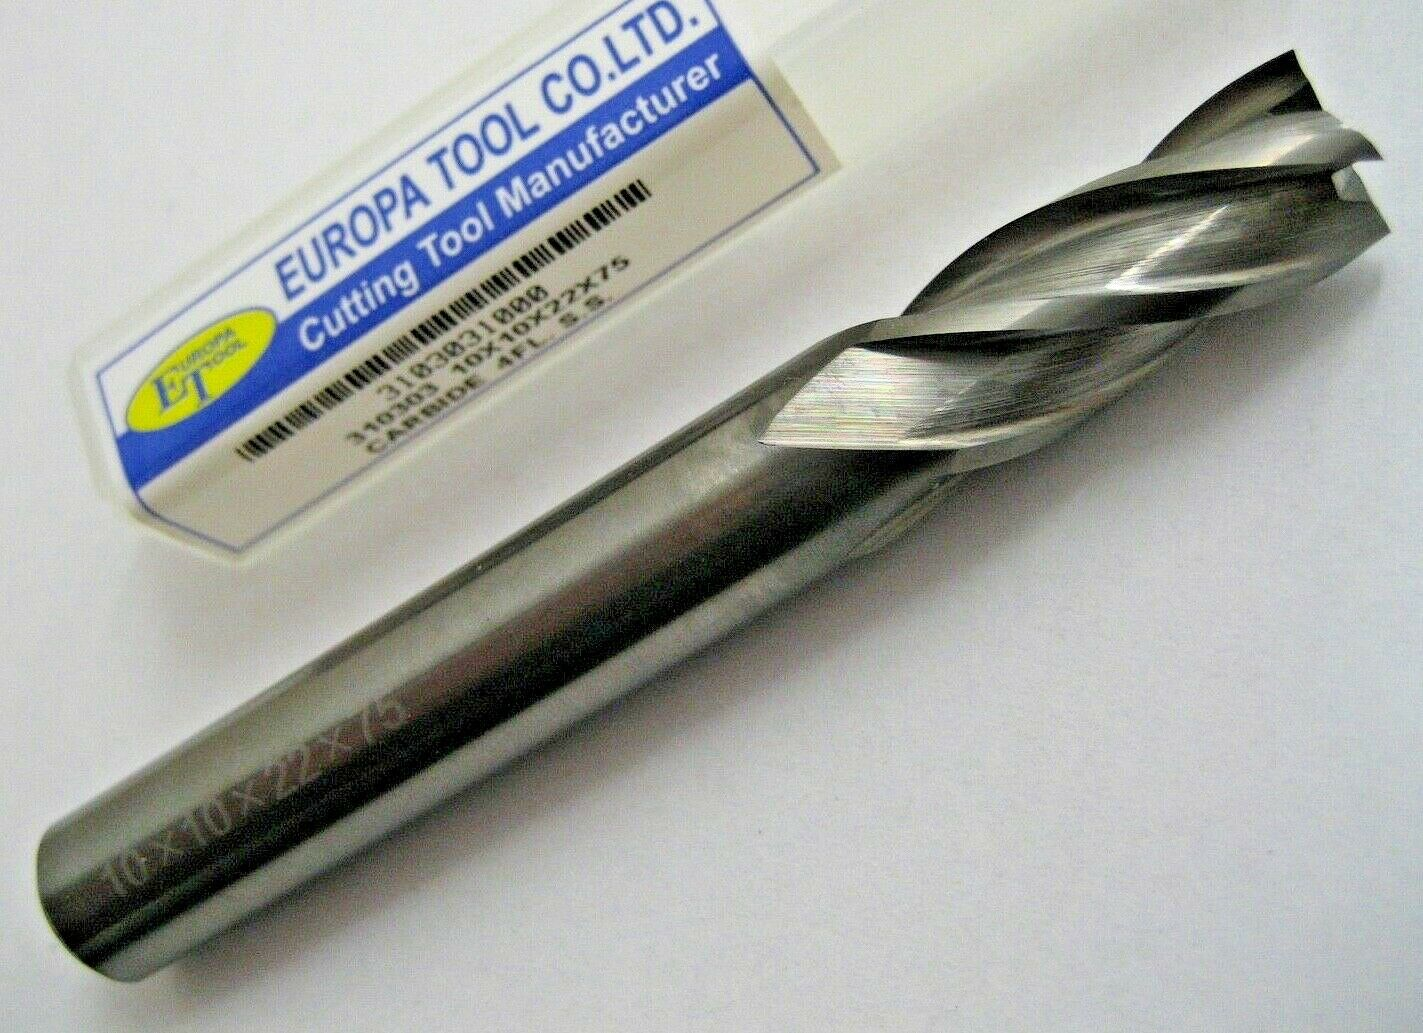 7mm SOLID CARBIDE END MILL 4 FLUTED EUROPA TOOL 3103030700 NEW /& BOXED  C5